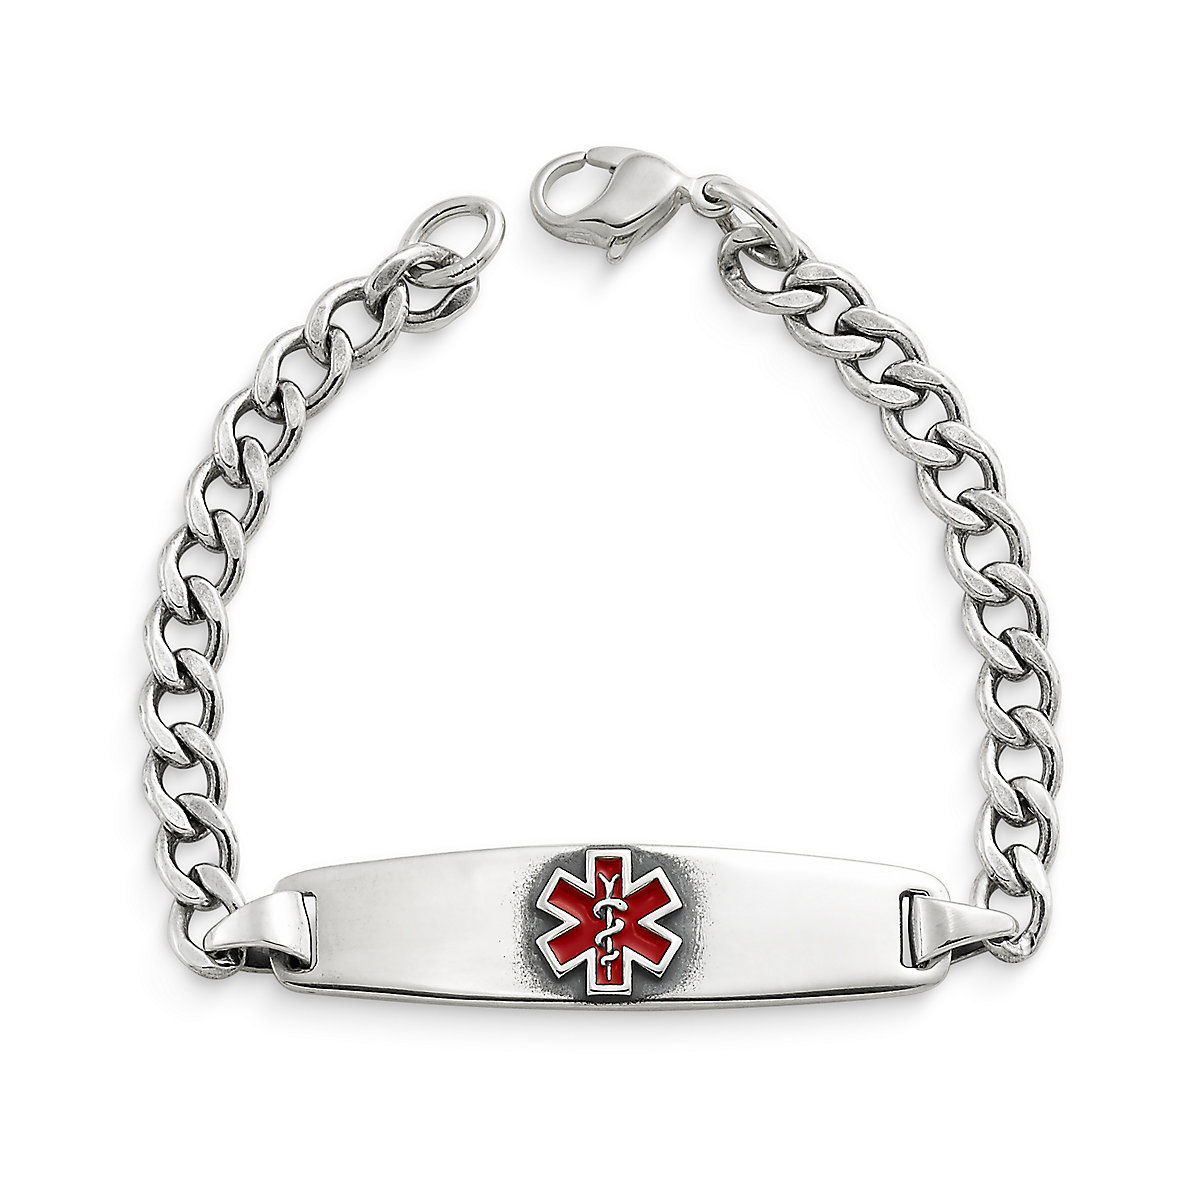 Enameled Medical Alert Bracelet Share